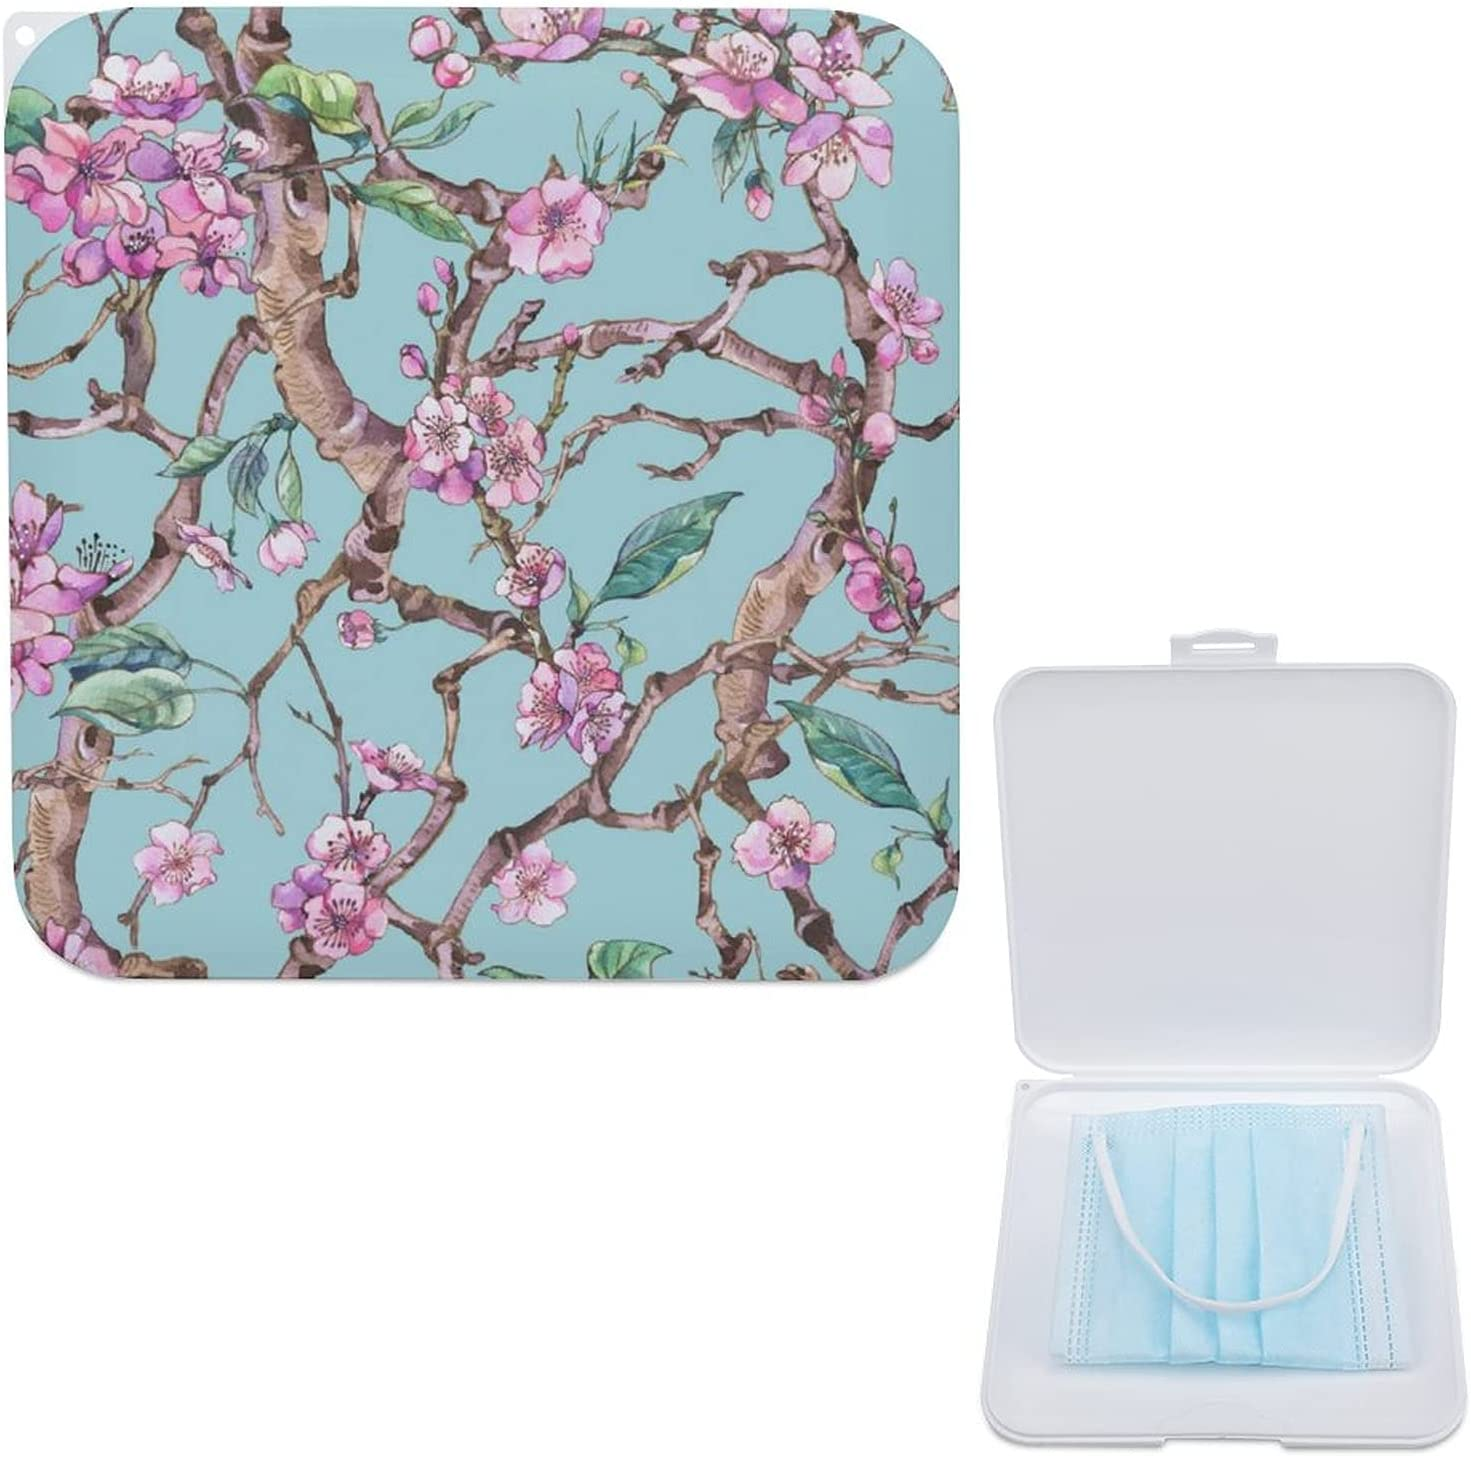 Plastic Storage Case For Face Popular brand in the world Mask Dustproof C Cover Sacramento Mall